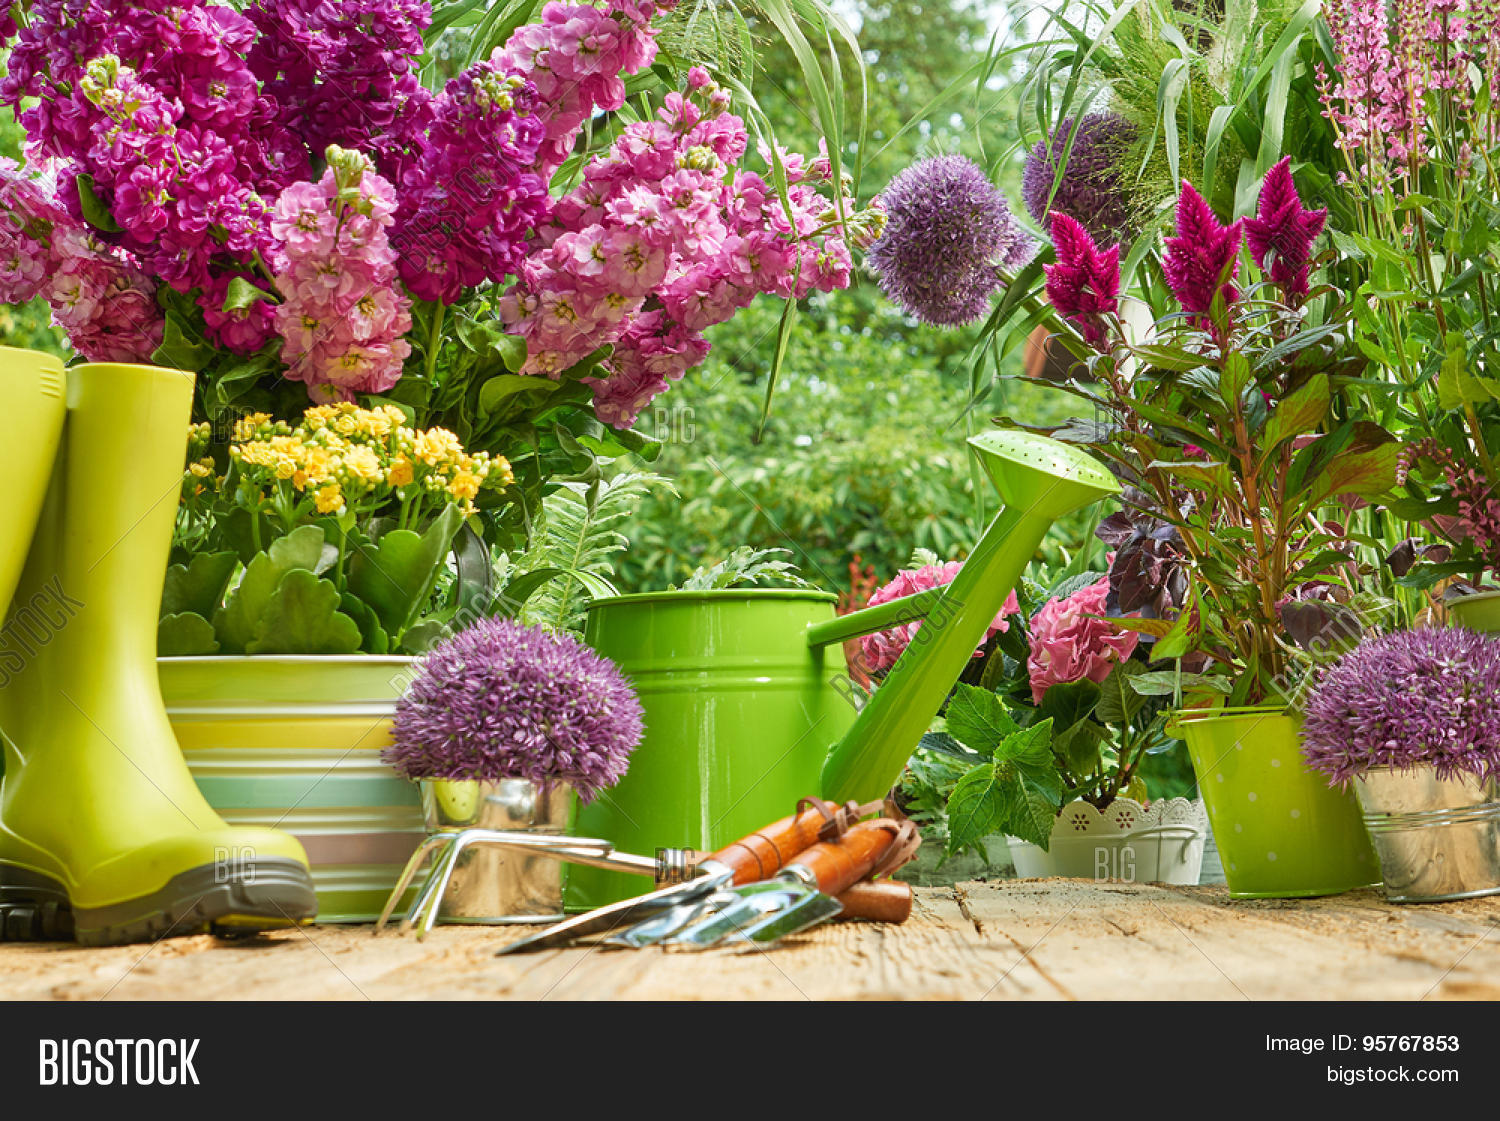 Gardening tools planting flower image photo bigstock for Gardening tools used in planting